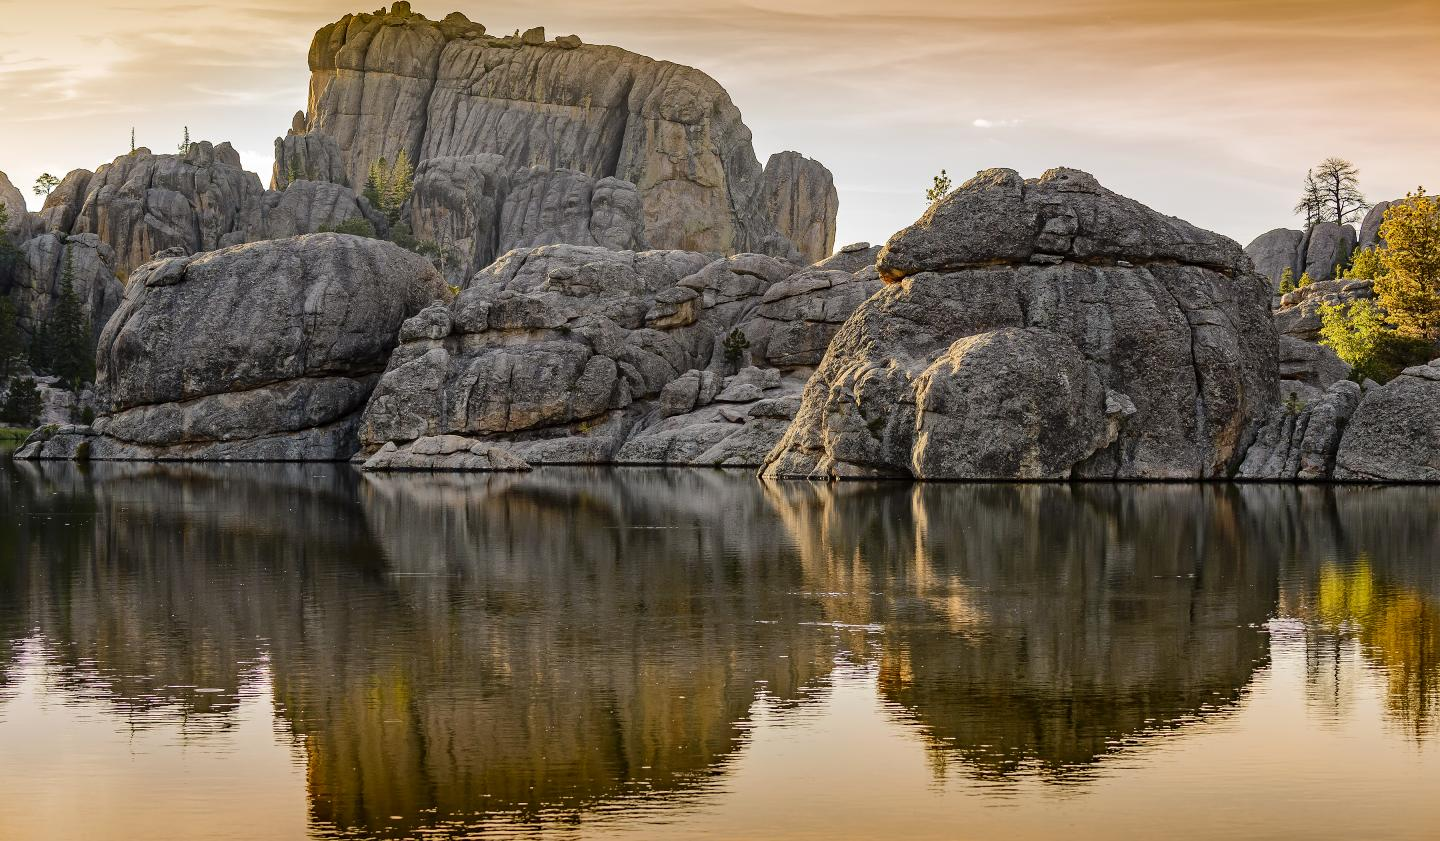 22 images of south dakota we can't stop looking at - south dakota